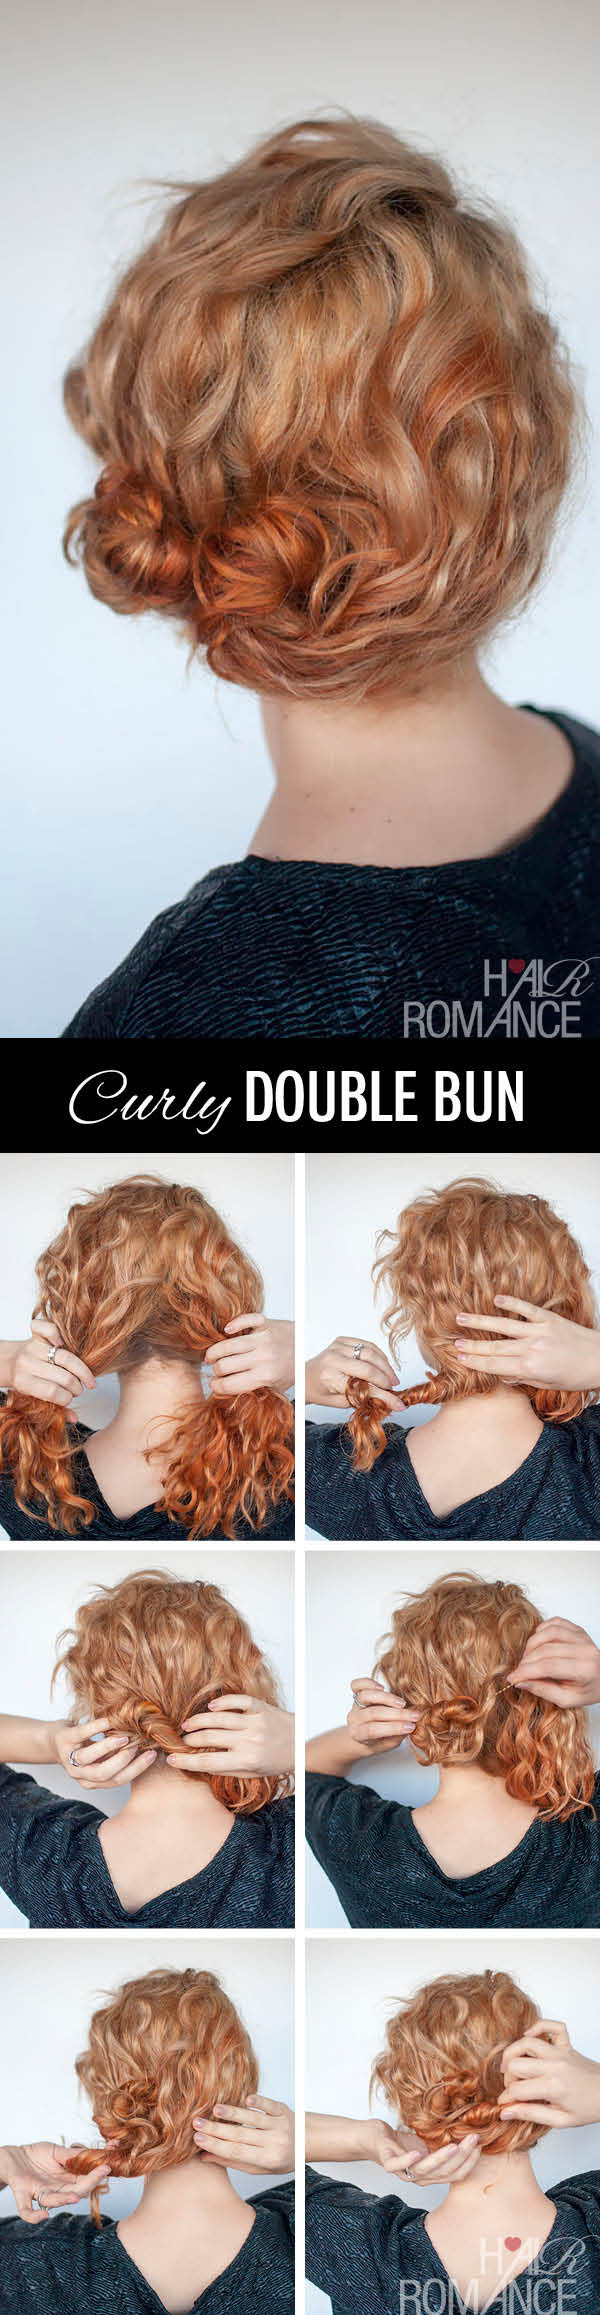 Hair Romance - curly double bun hairstyle tutorial